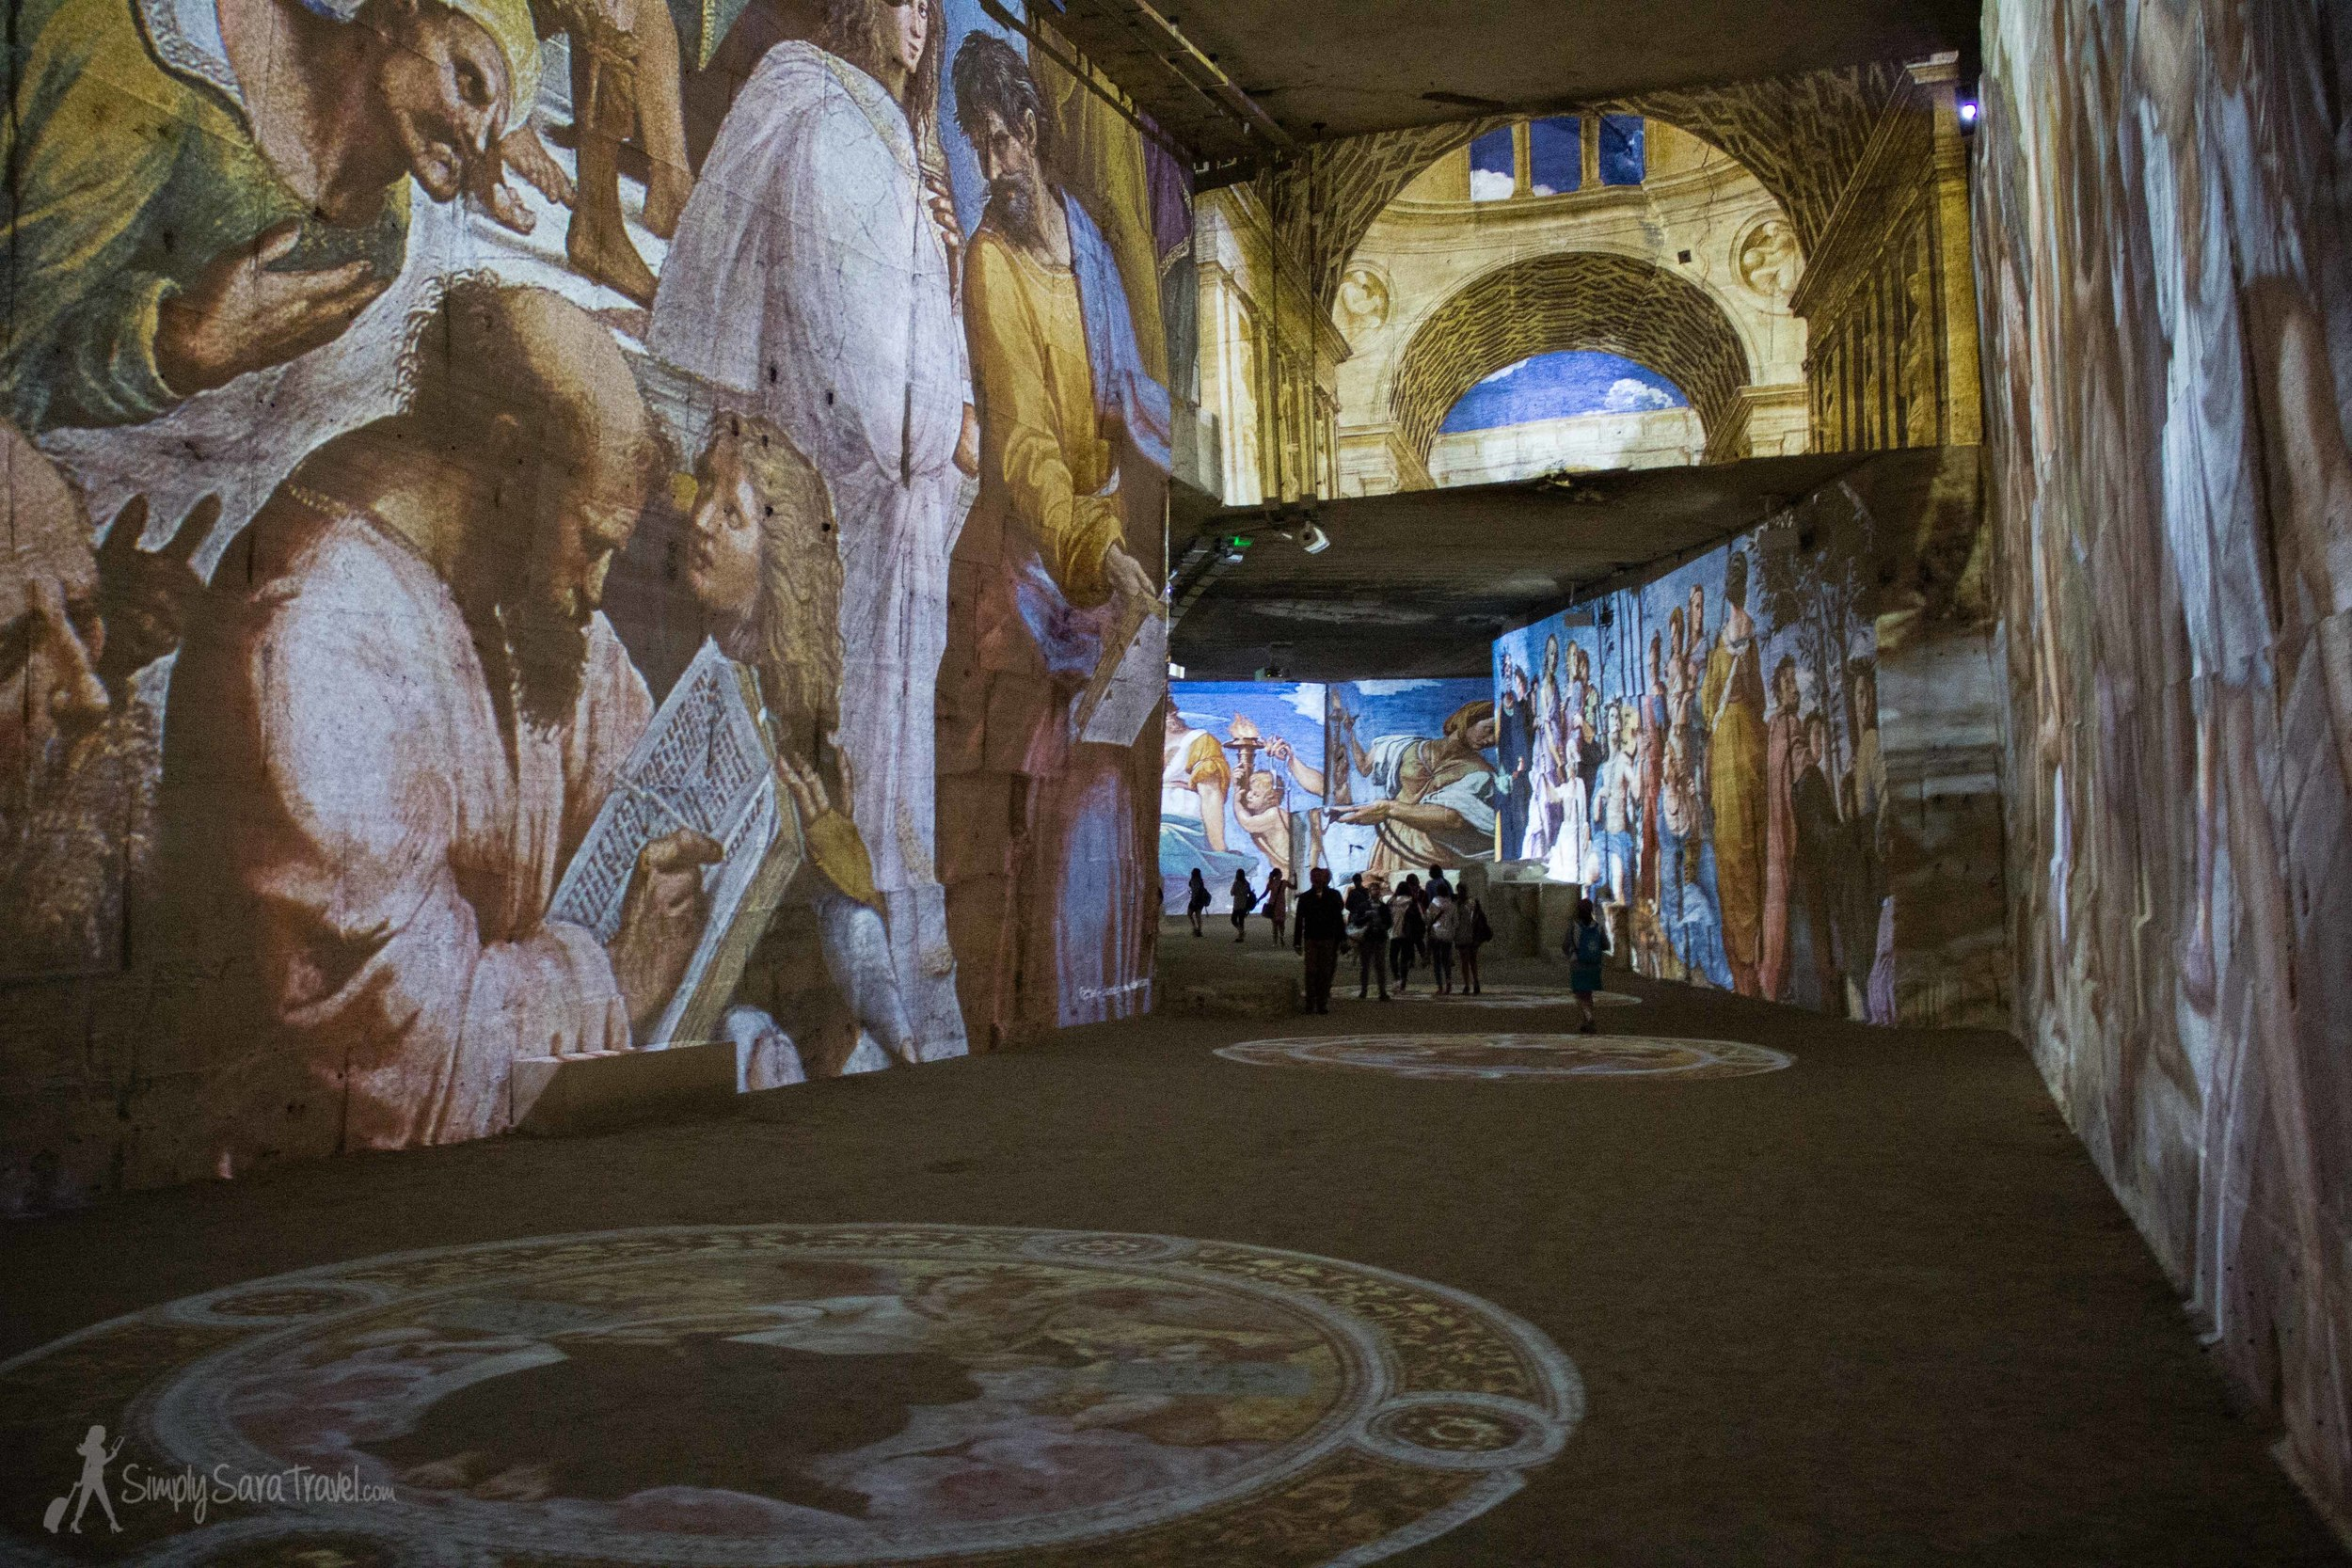 The stone quarry may seem like an odd addition to the list - but the Carrières de Lumières exhibition in the town of  Les Baux-de-Provence gives a twist to walking around some mines.